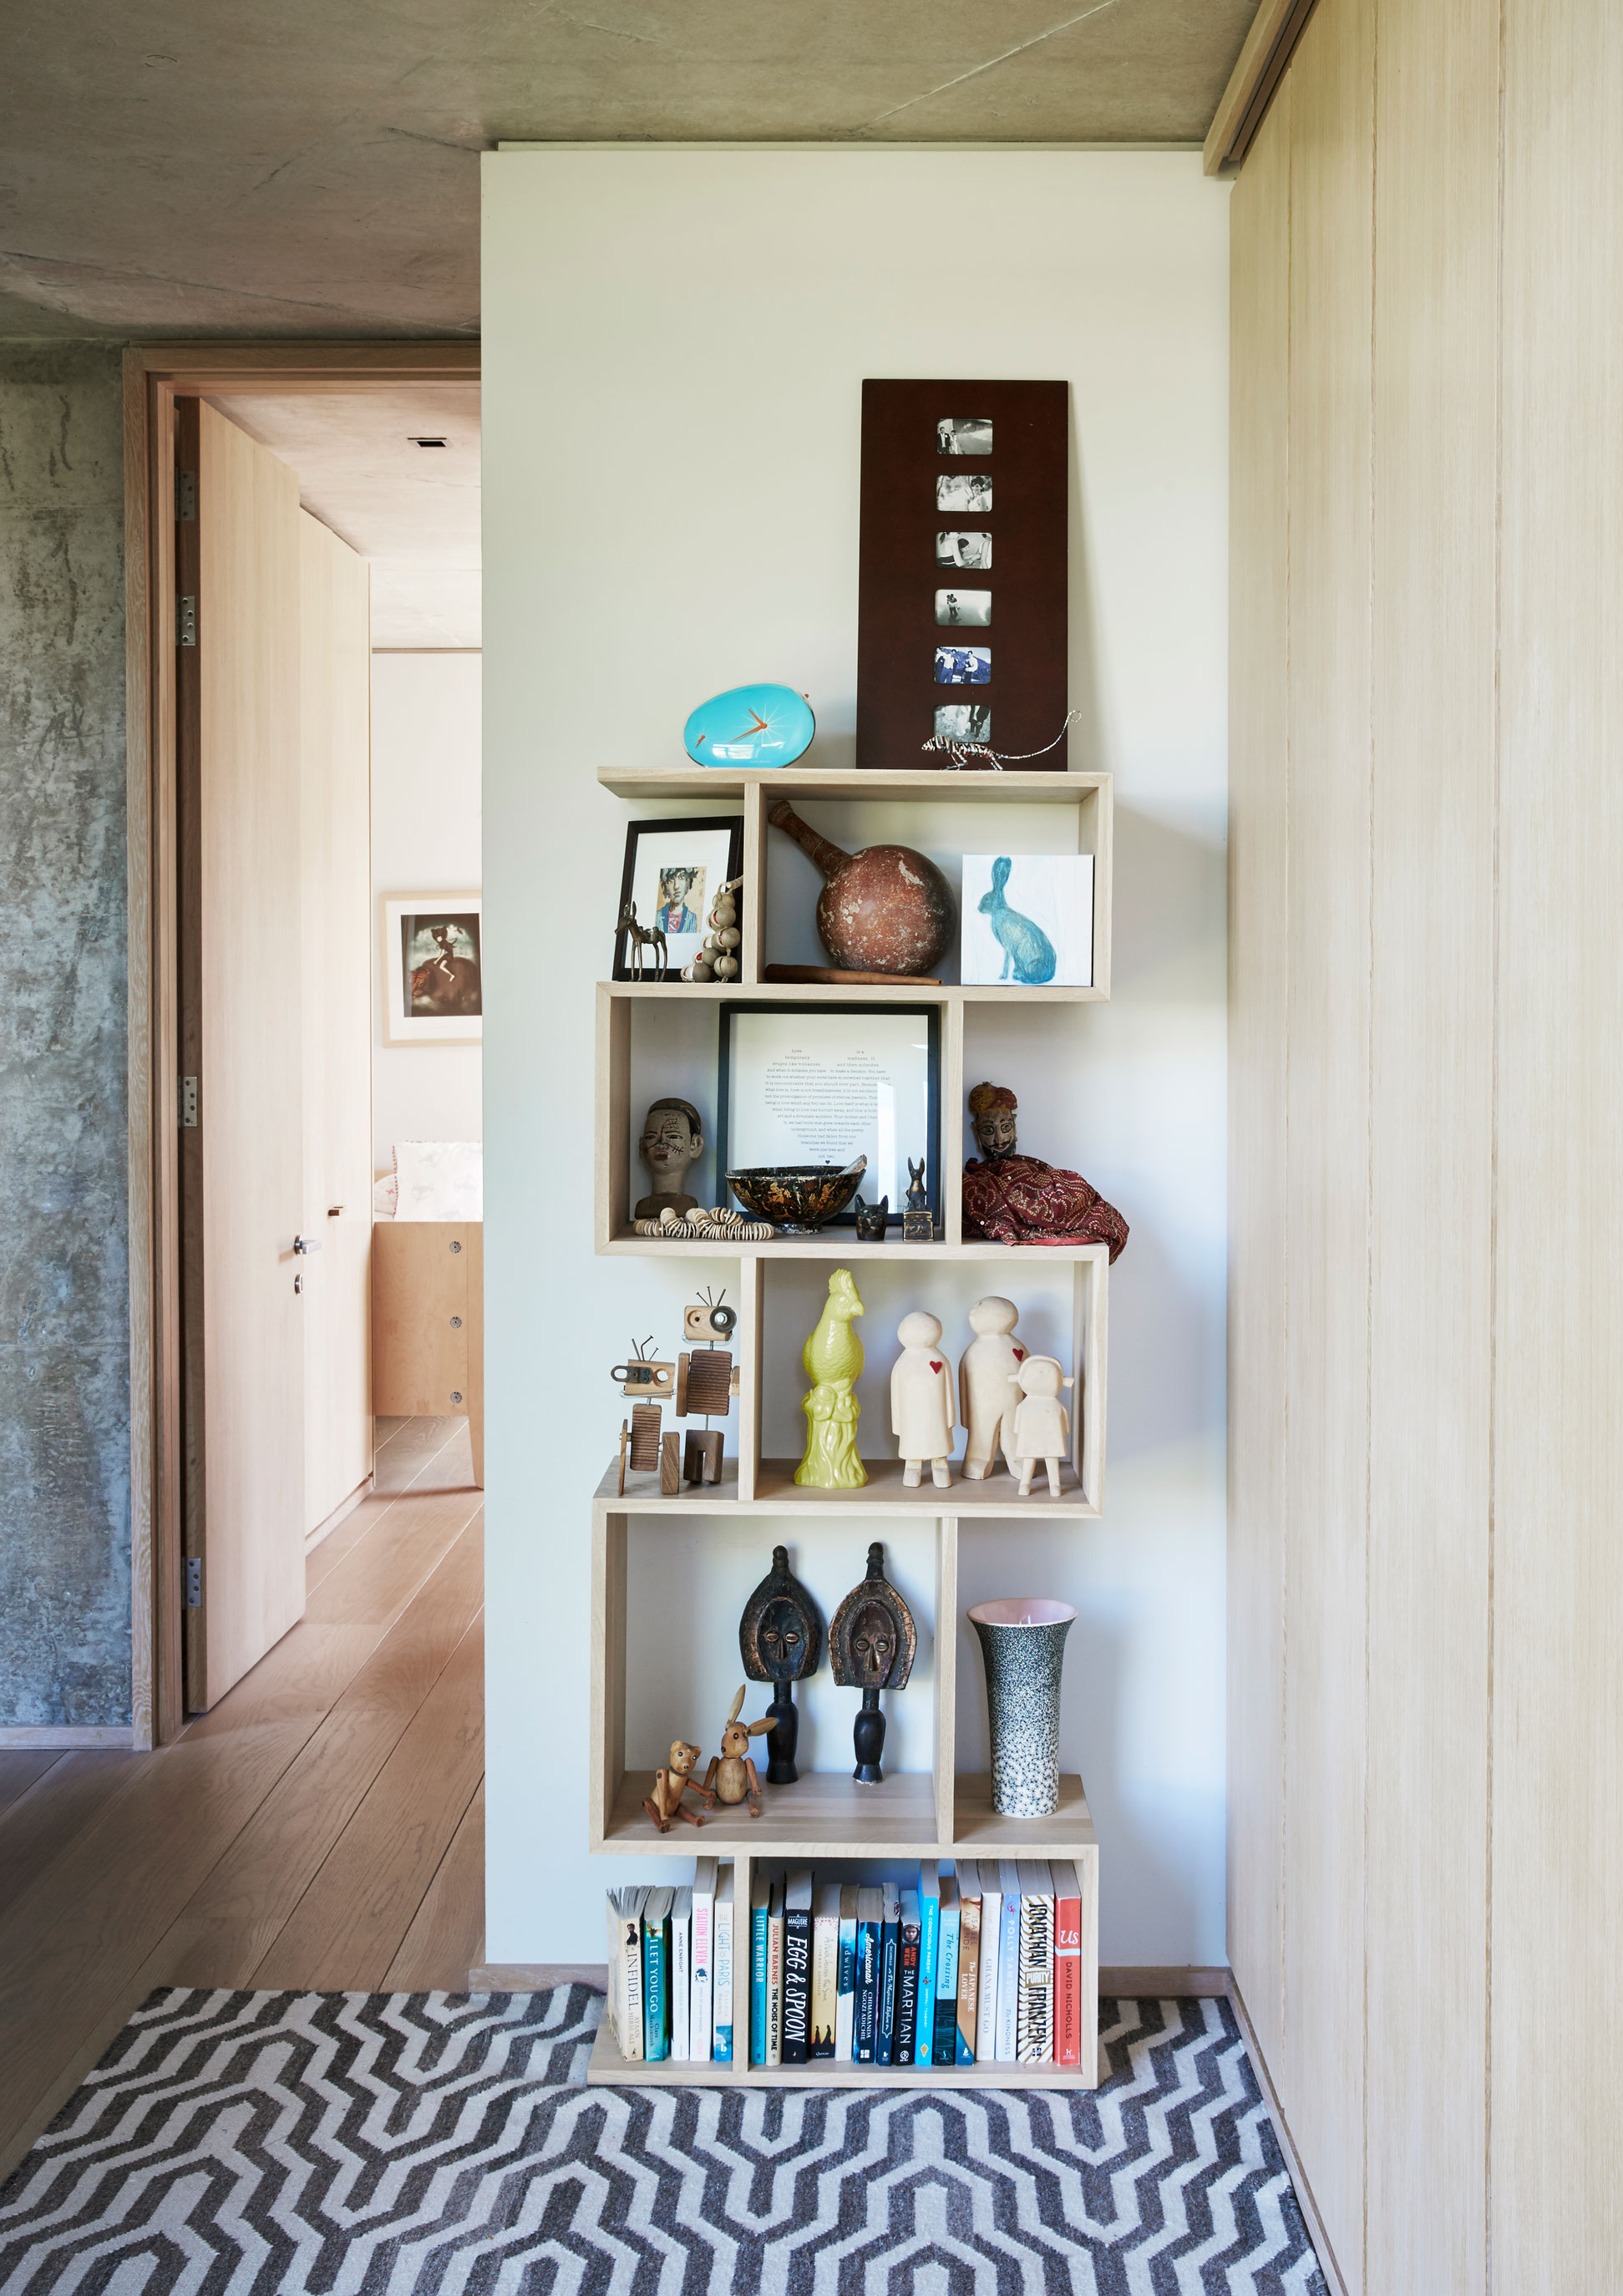 This bookshelf in the bedroom wing!&s passage serves to display some of Matt!&s collection of artefacts collected over two decades of backpacking through Africa, Asia, India and South America, interspersed with more recent finds upon which the couple more easily agree.